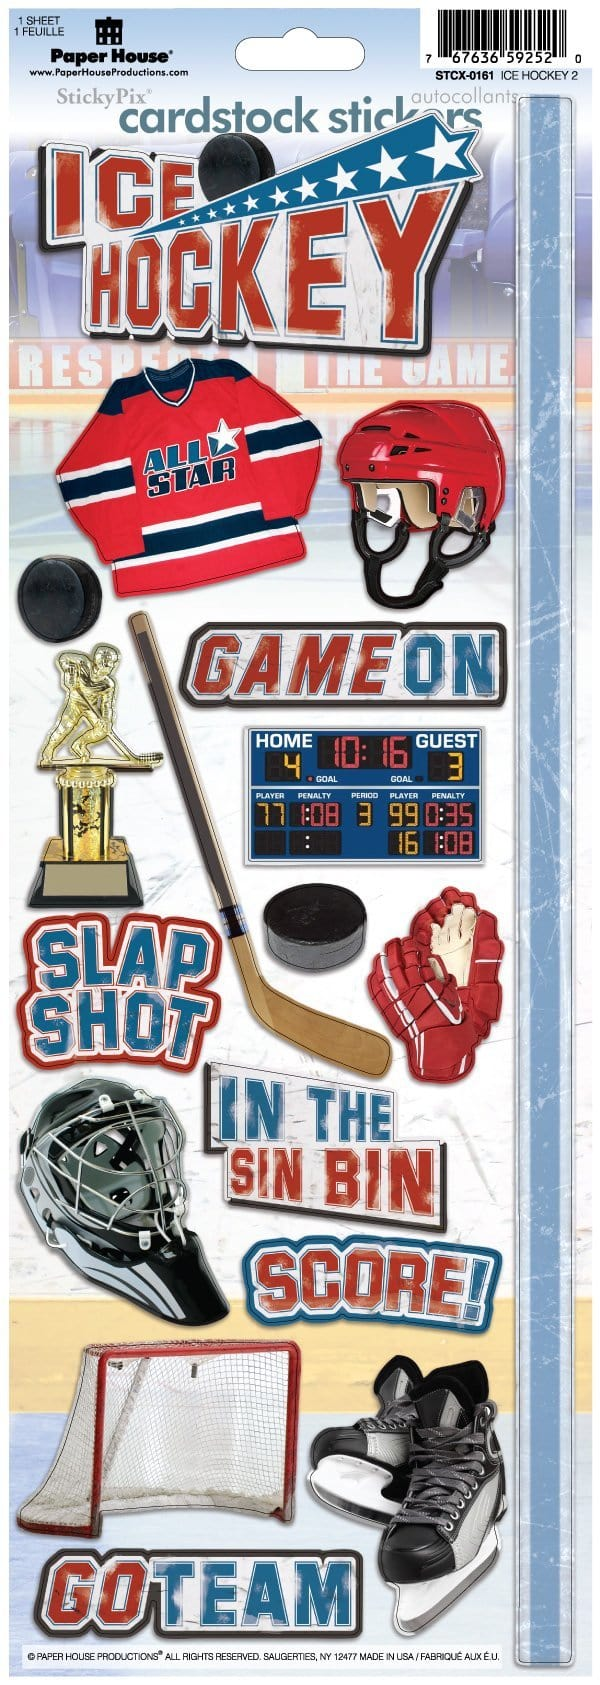 Ice Hockey Cardstock Stickers